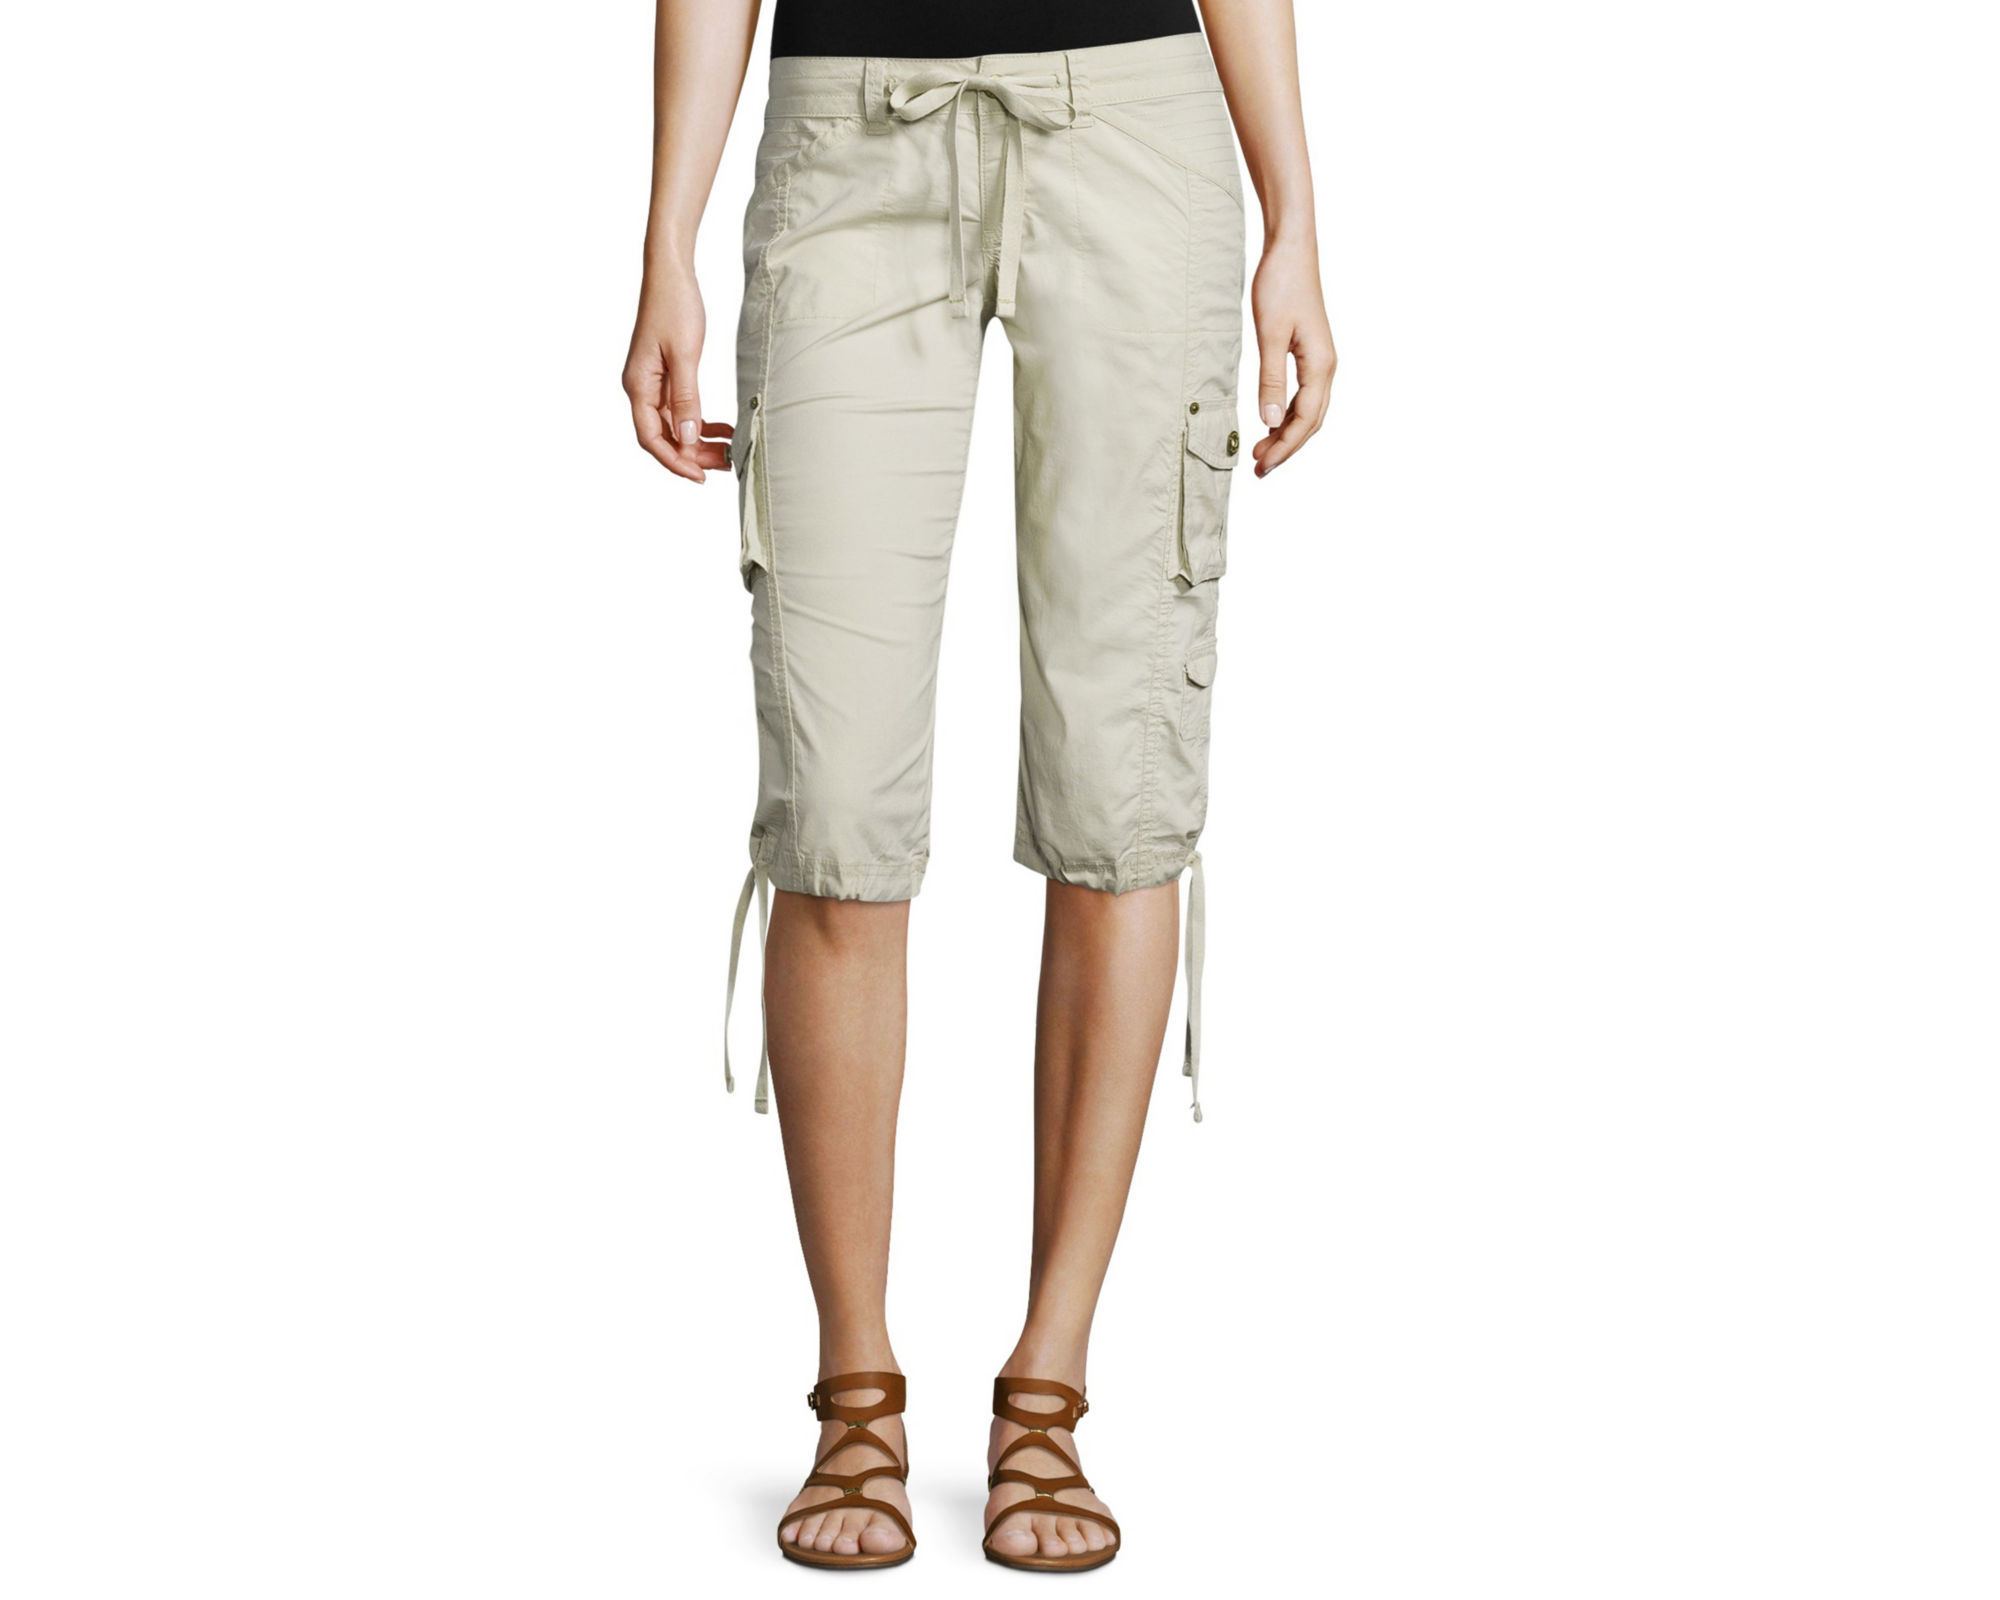 Amazing Liz Claiborne Cargo Cropped Pants Petite For Women  Tommp